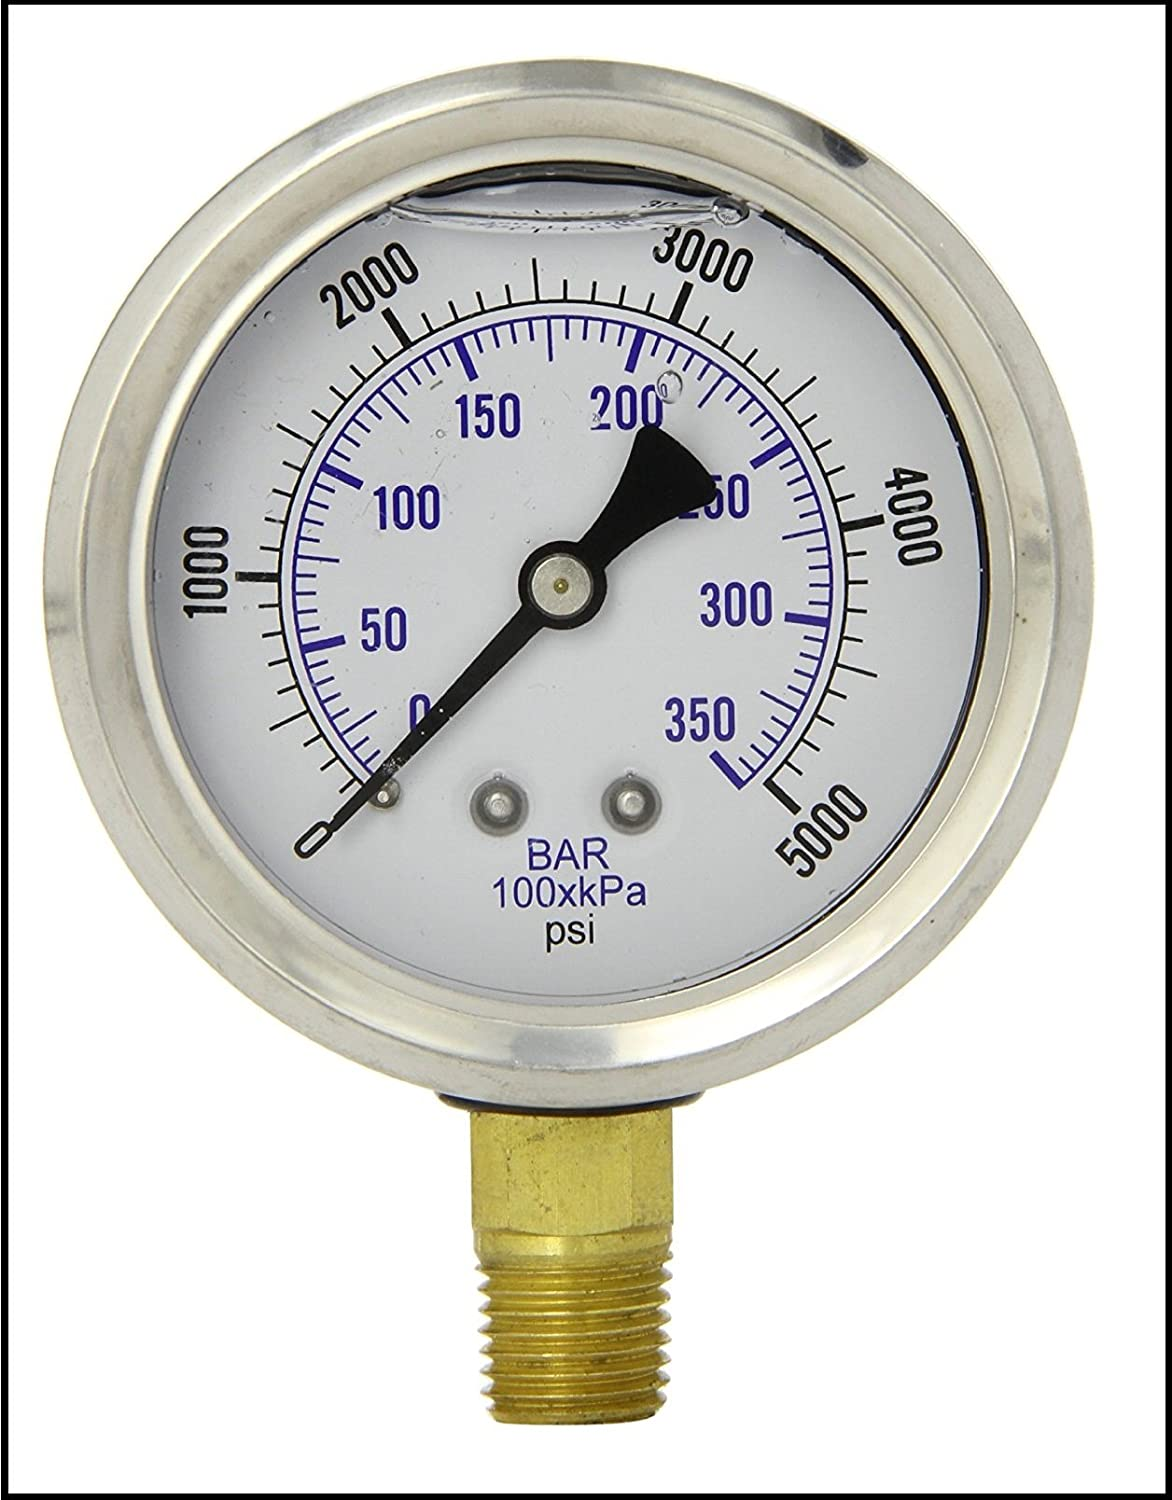 LIQUID FILLED PRESSURE GAUGE 2.5 DIAL DISPLAY STAINLESS STEEL CASE BRASS INTERNALS 1 4 MALE NPT LOWER MOUNT CONNECTION DUAL SCALE PSI BAR 0 5000